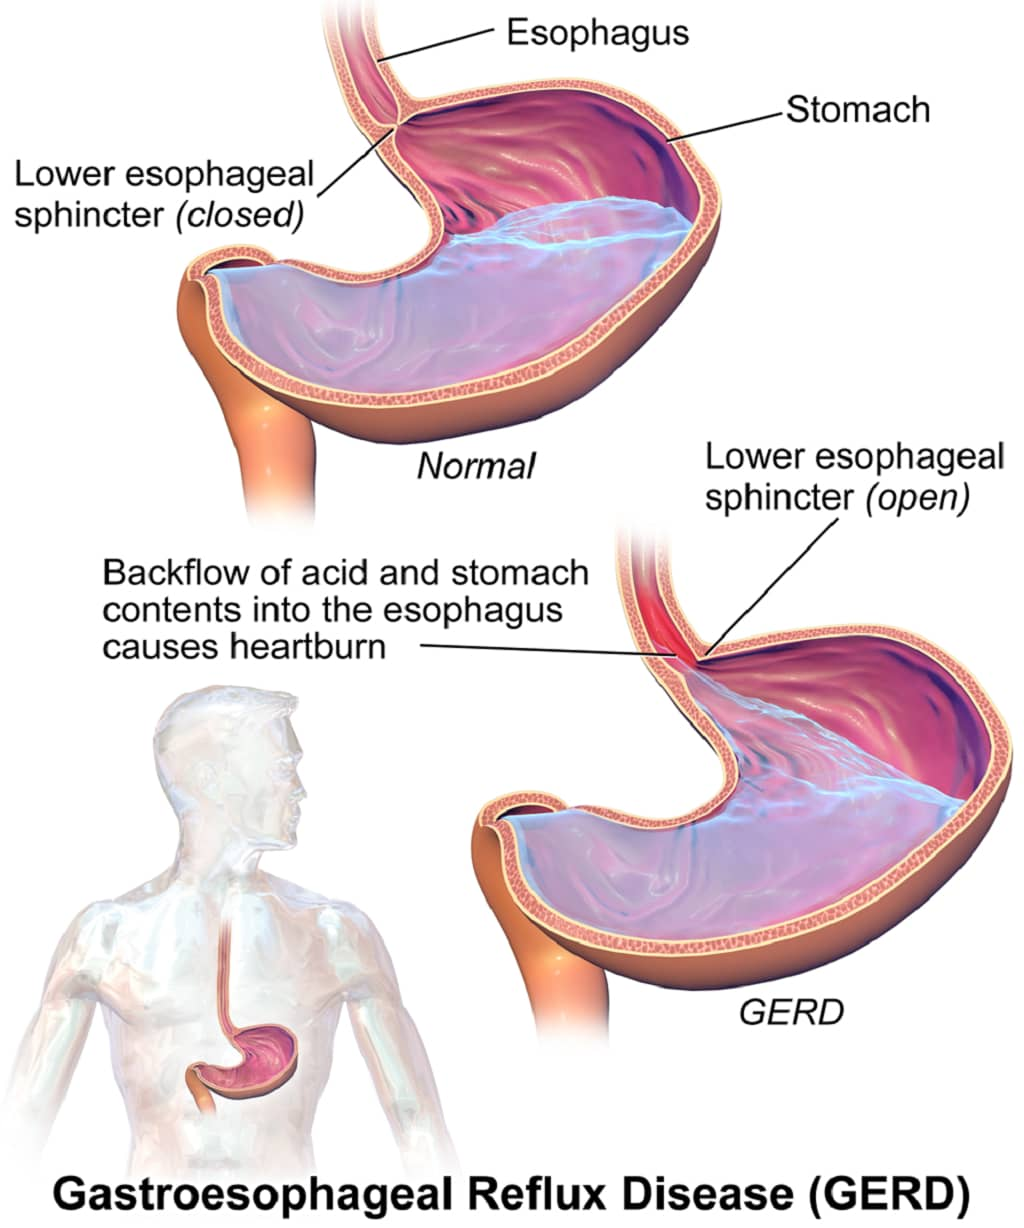 What Are The Symptoms Of Gastroesophageal Reflux Disease